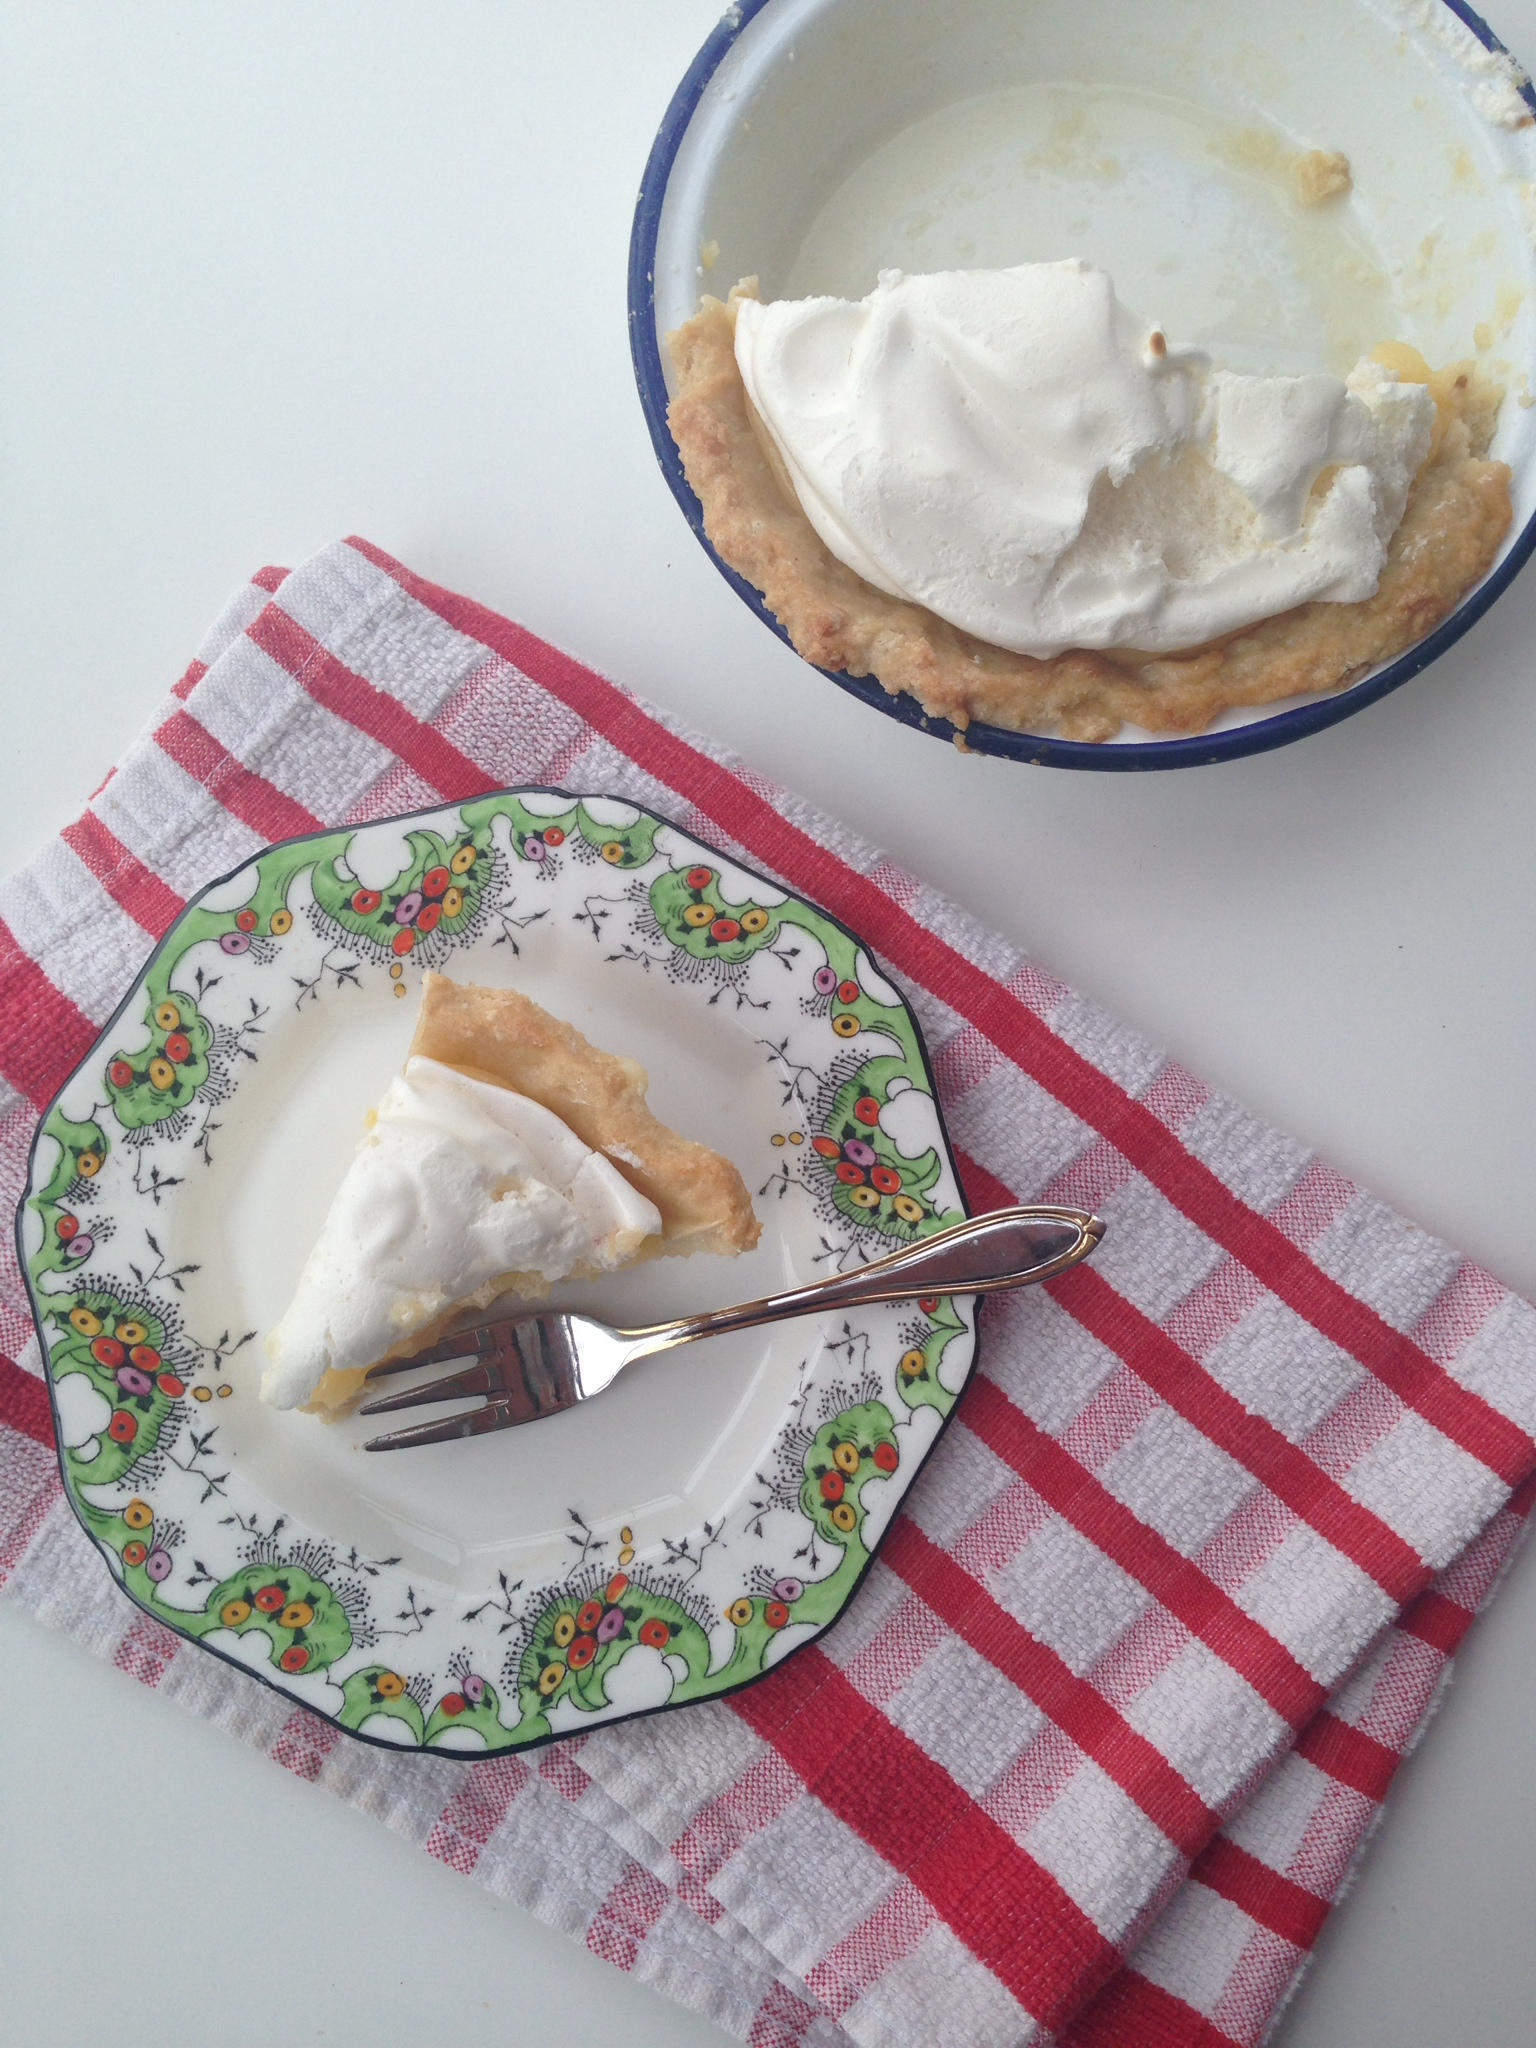 Lemon Meringue Pie - easy recipe at kerrycooks.com